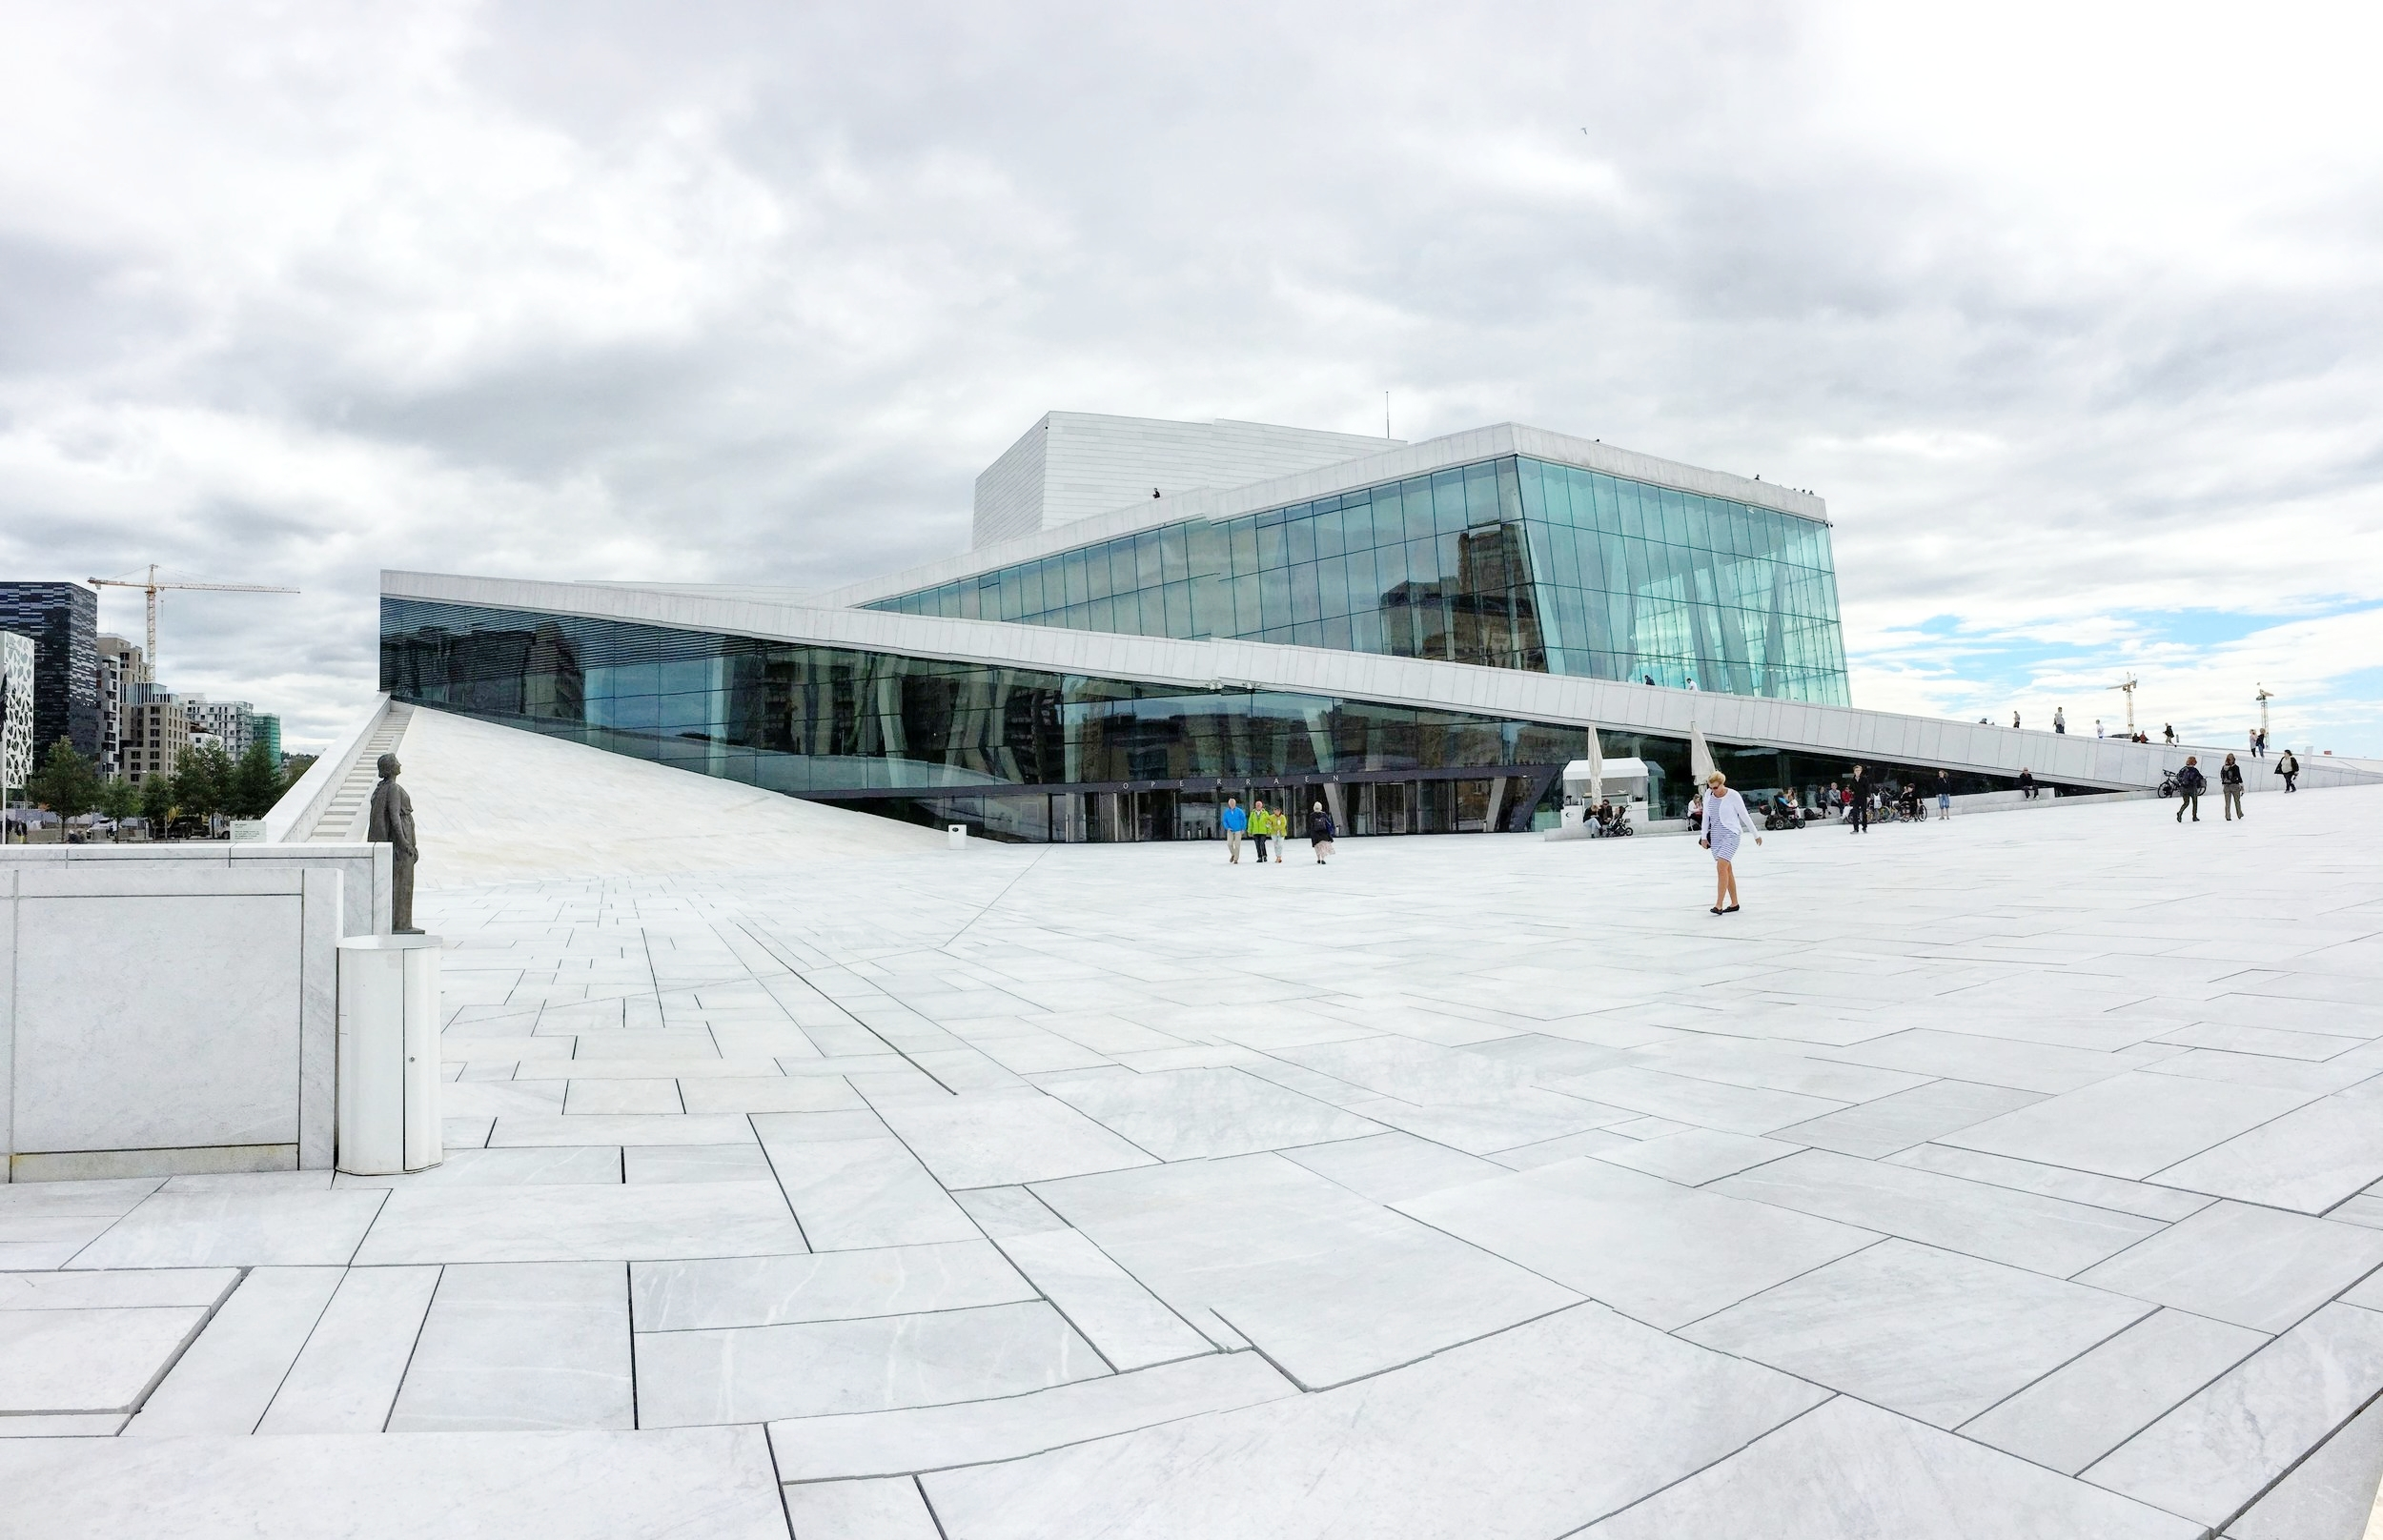 You can actually walk up the side of the Opera house!// Oslo, Norway